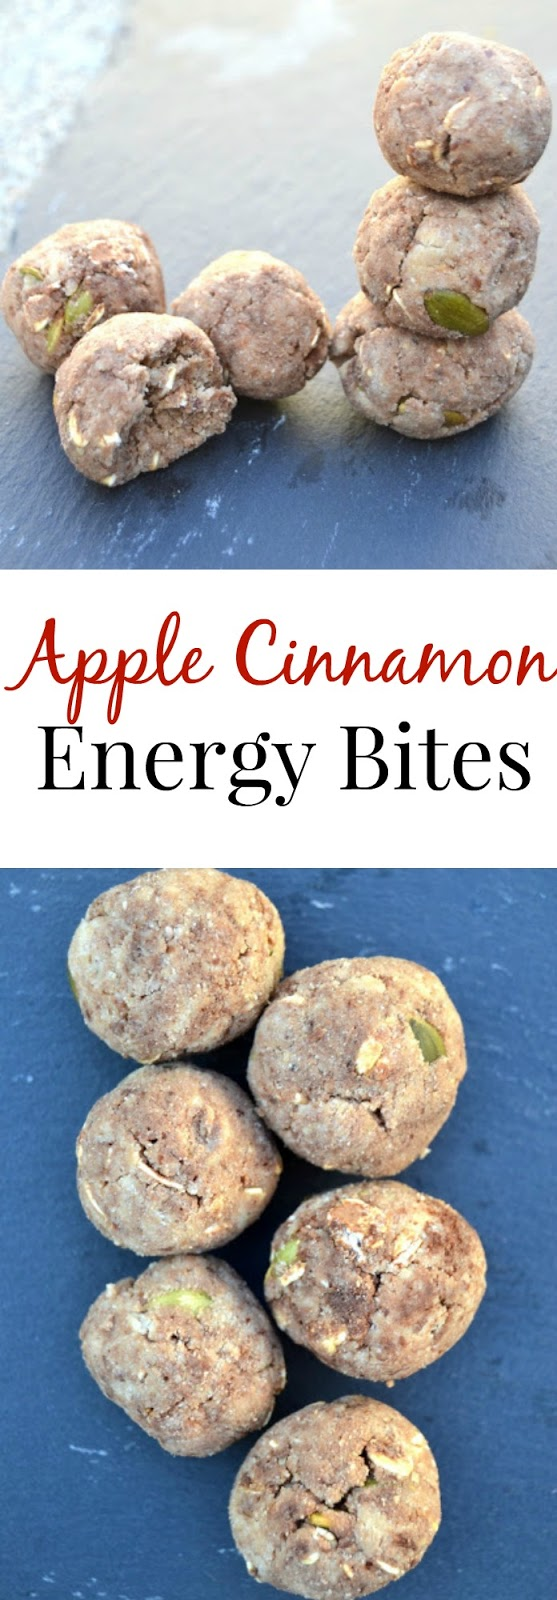 These Apple Cinnamon Energy Bites are filling, tasty and high in protein and fiber to keep you full. www.nutritionistreviews.com